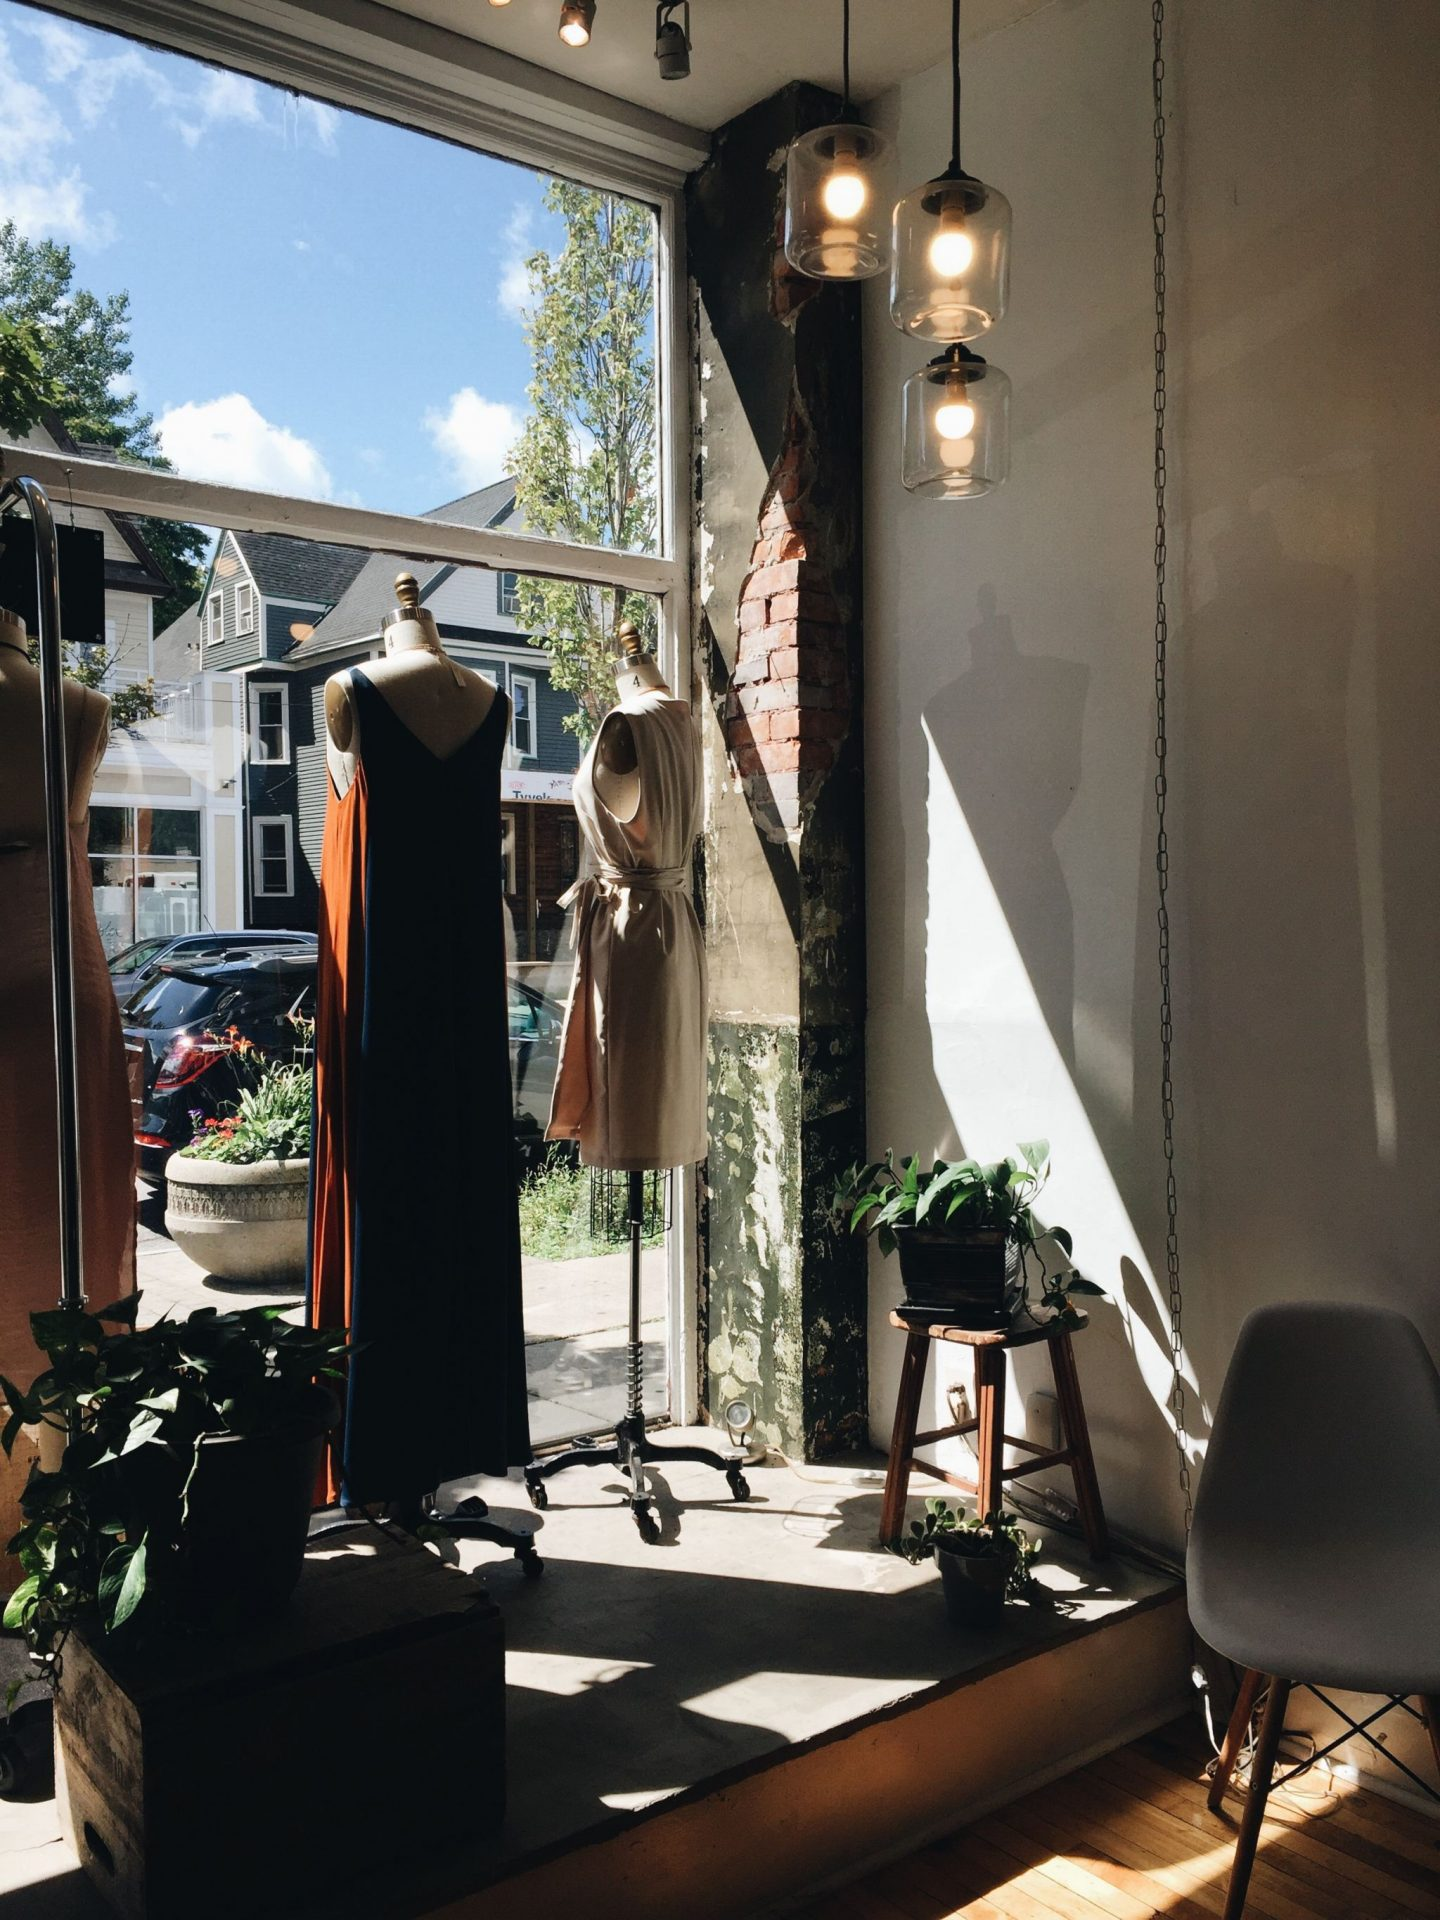 Spend the day in Buffalo: Brunch, Ice Cream + Shopping in Elmwood Village